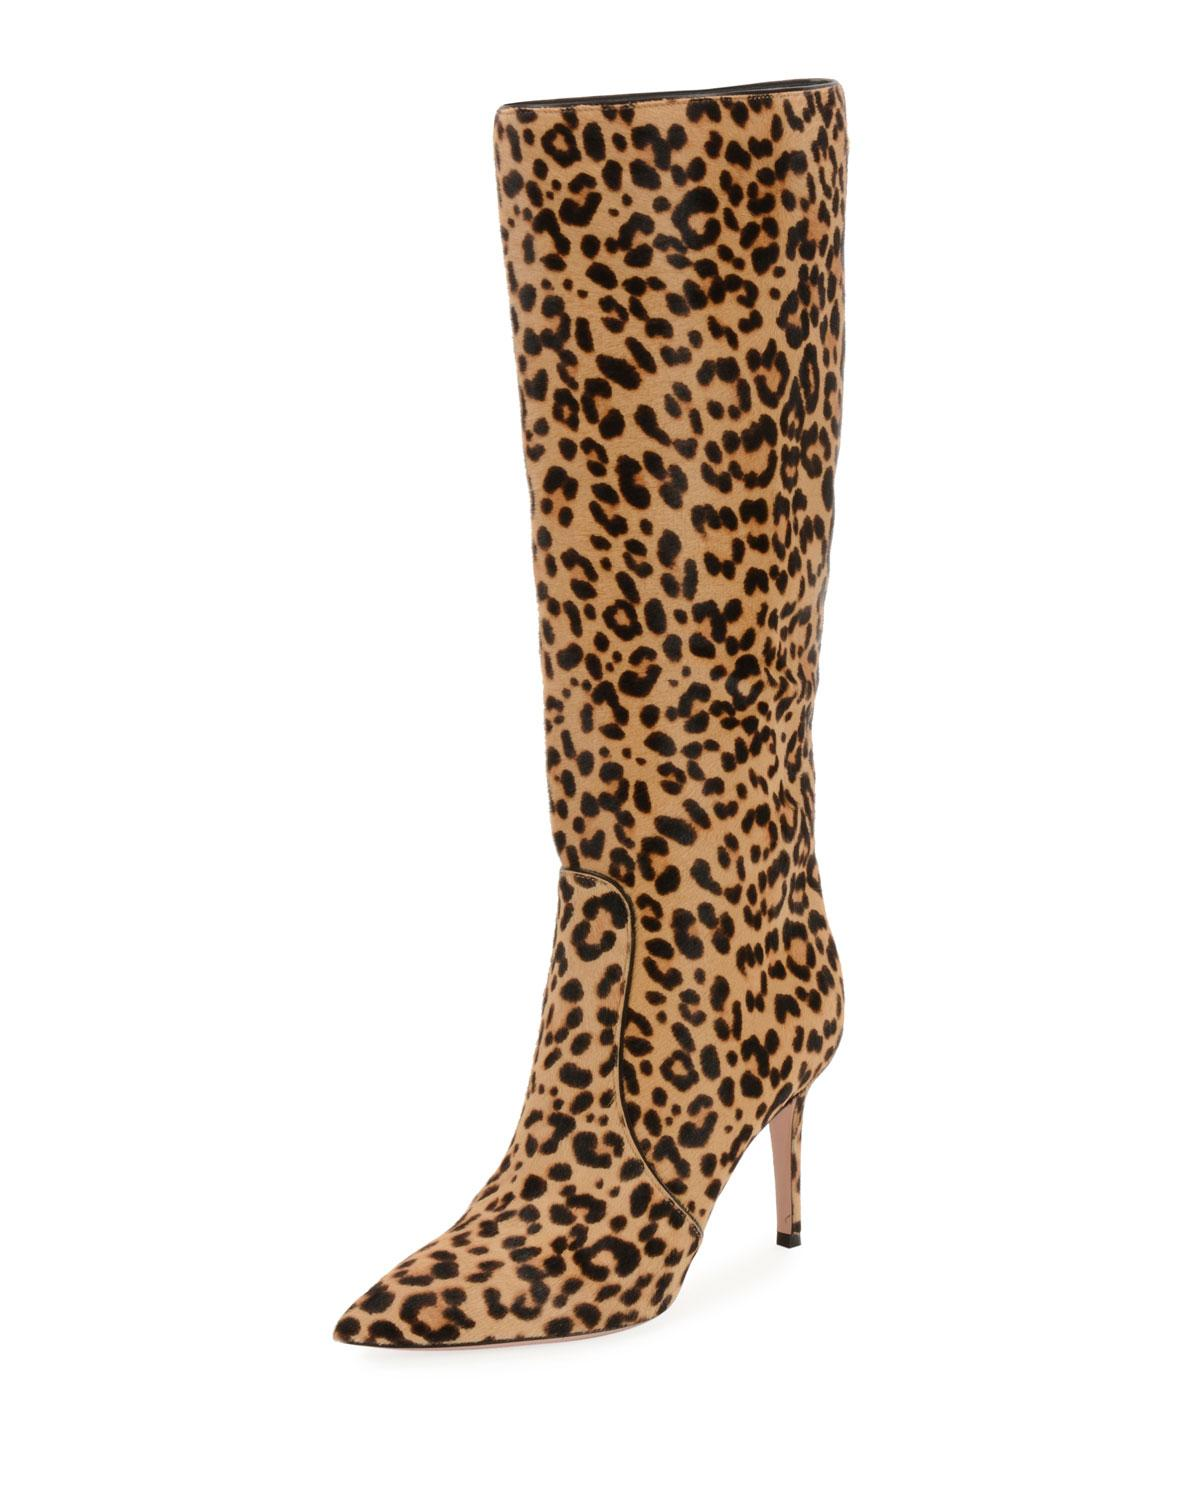 5f64141393c34 Gianvito Rossi Hunter Leopard-Print Calf Hair Knee Boots - Lt. Brown Size  10.5